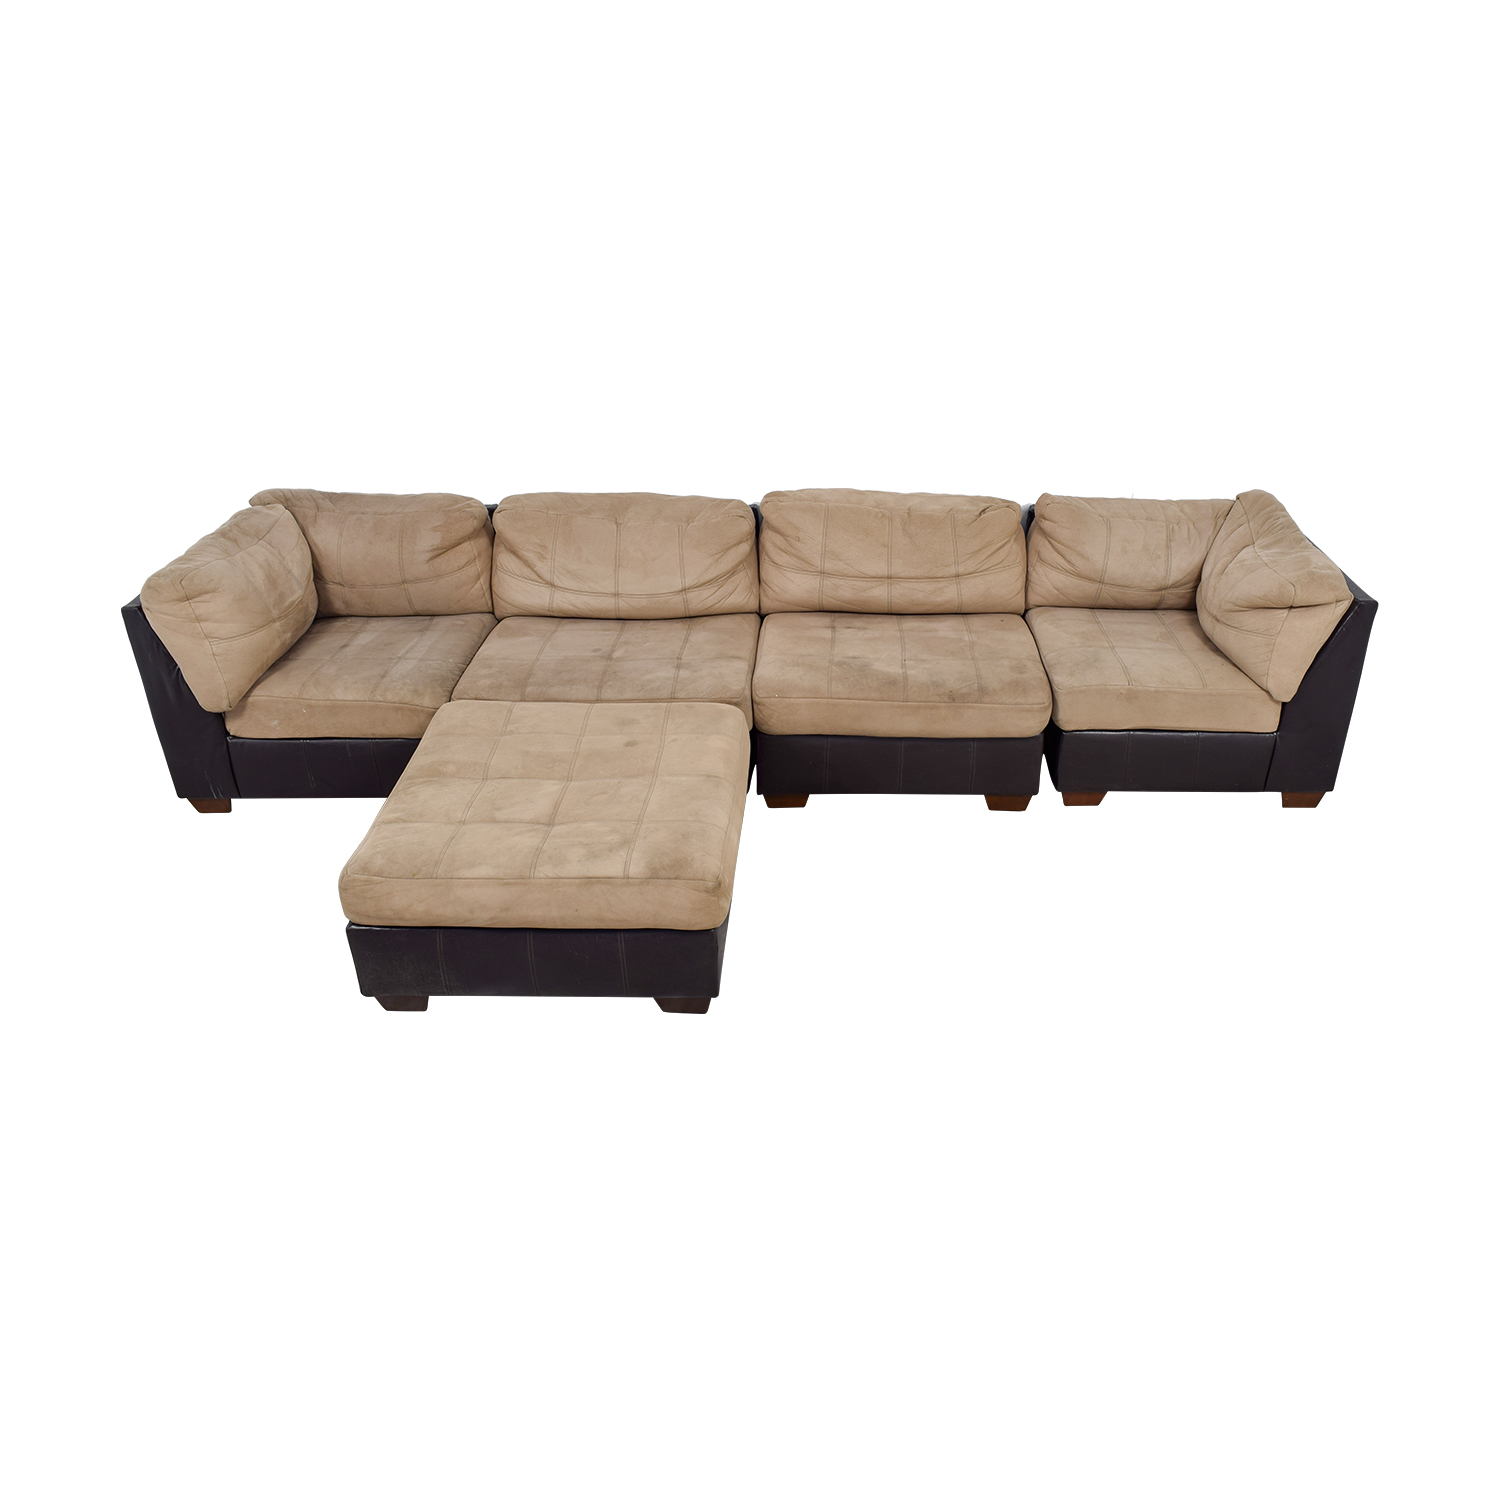 Ashley Furniture Brown Leather and Beige Sectional / Sofas